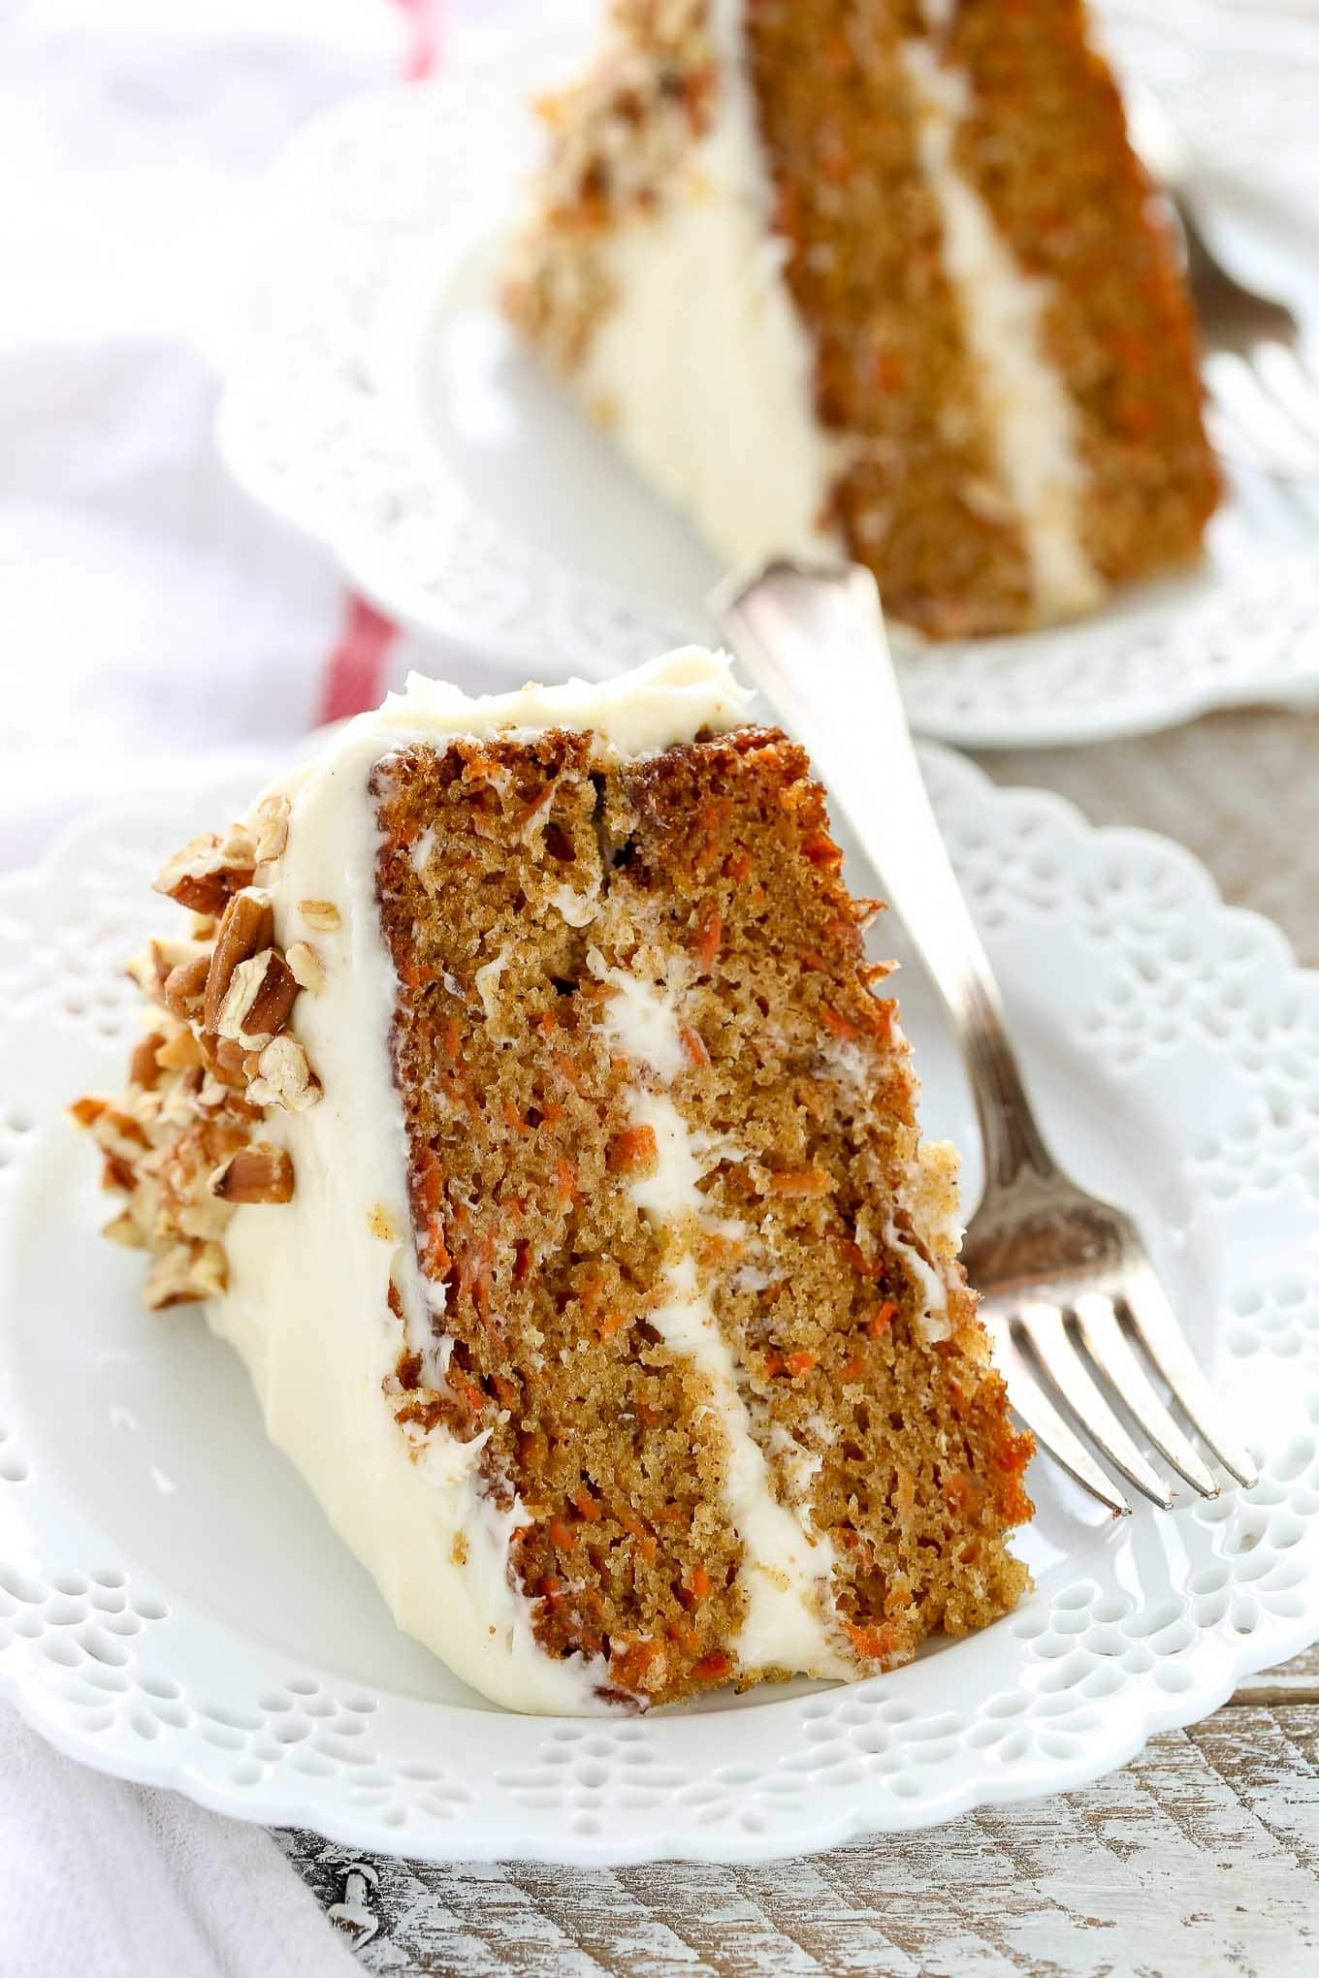 The BEST Carrot Cake with Cream Cheese Frosting - Simple Recipes Carrot Cake